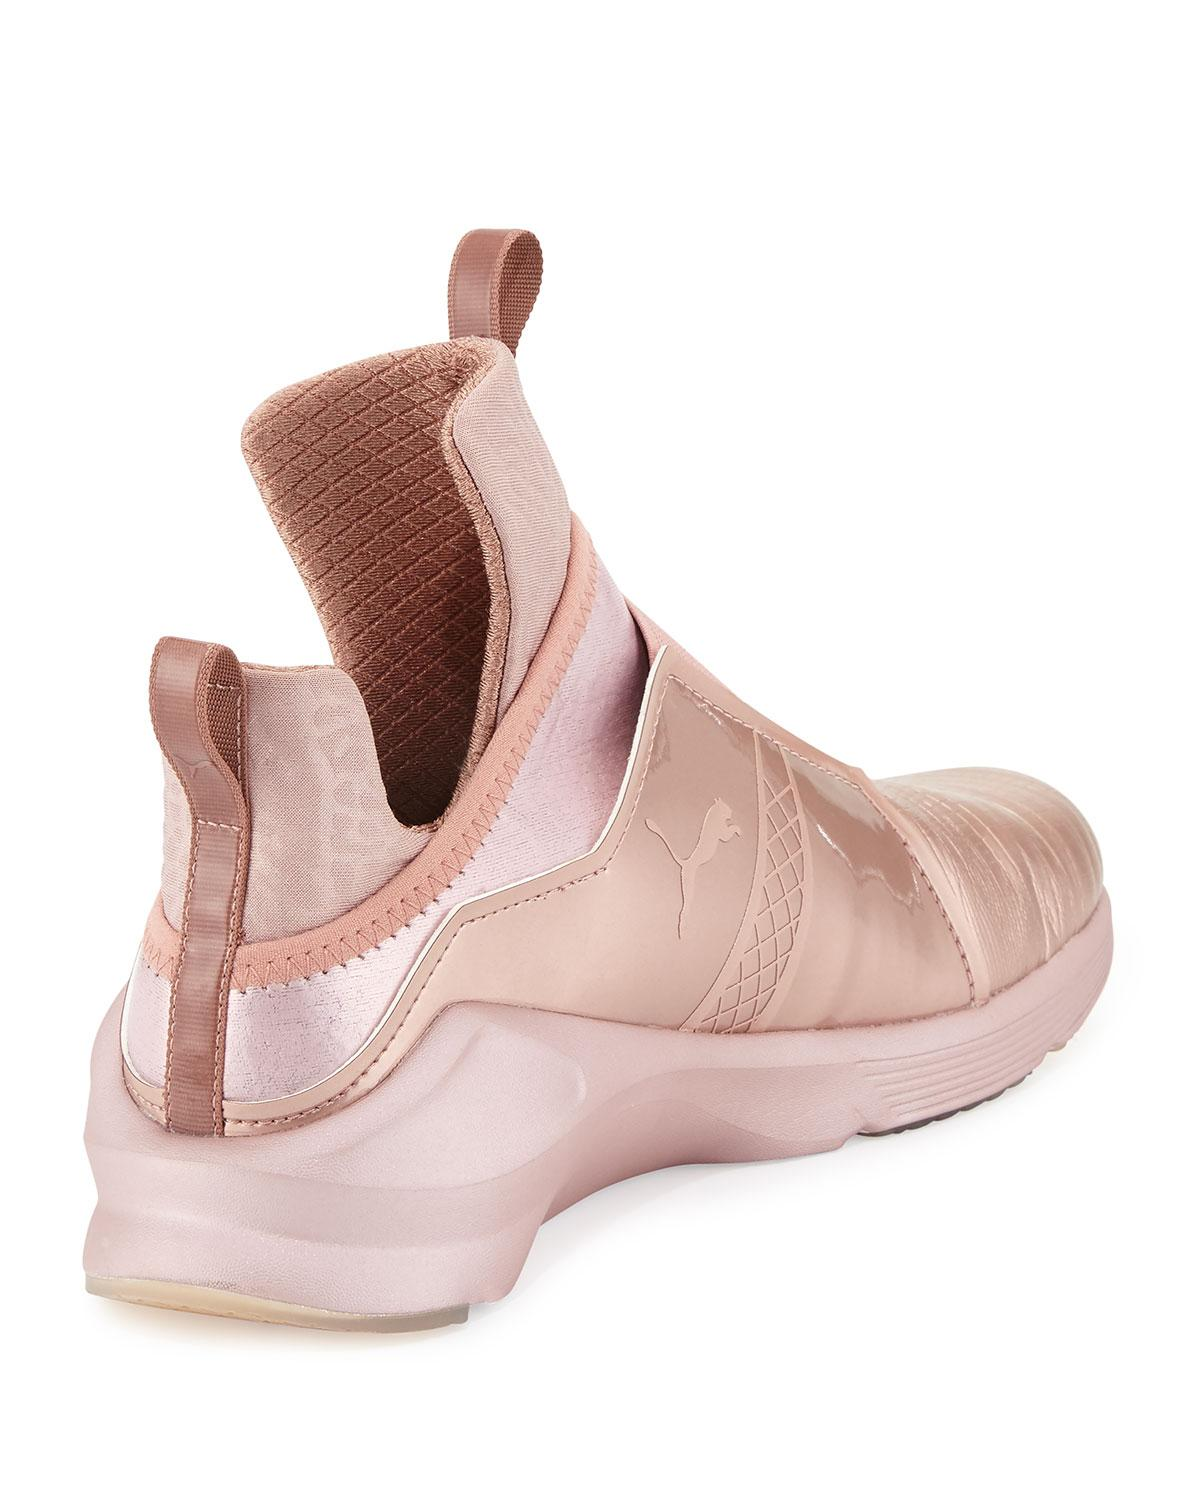 46feea56075d Lyst - PUMA Fierce Lizard-embossed High-top Sneaker in Pink